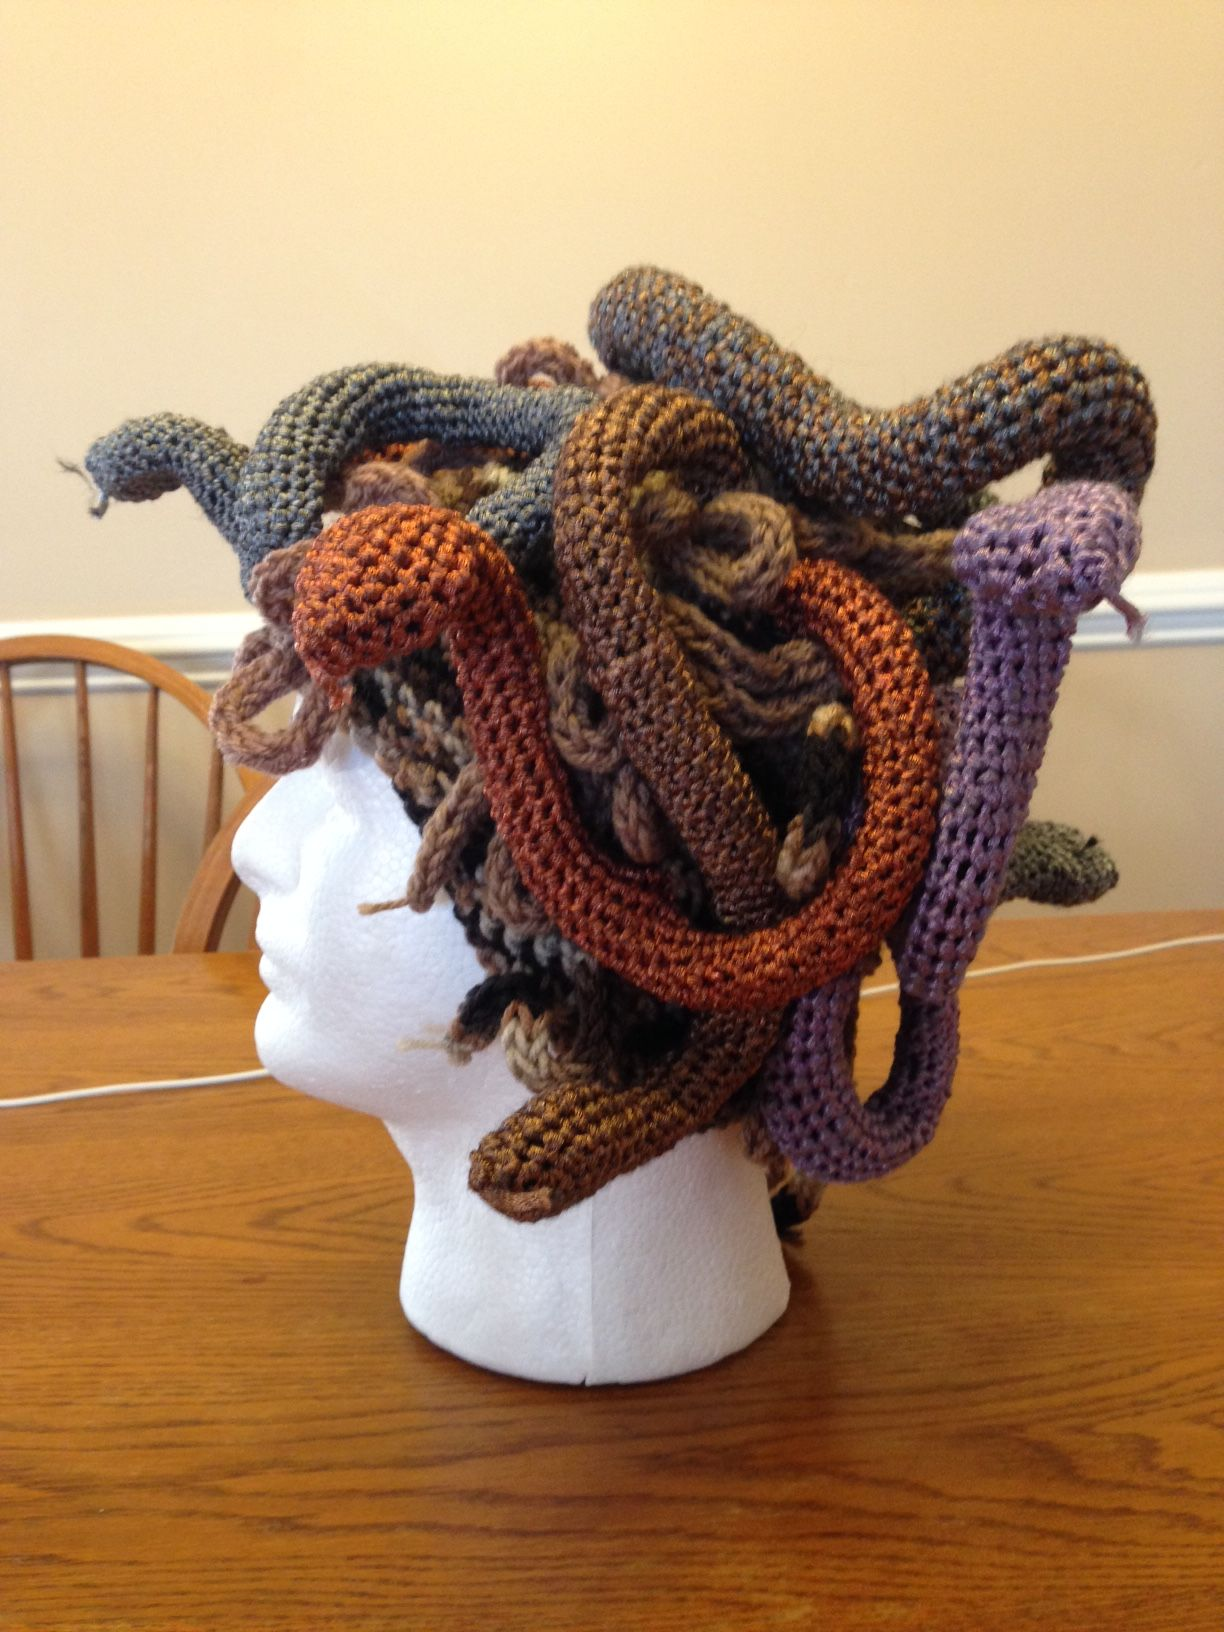 Crochet Medusa Hat | cool projects | Pinterest | Medusa, Crochet and ...